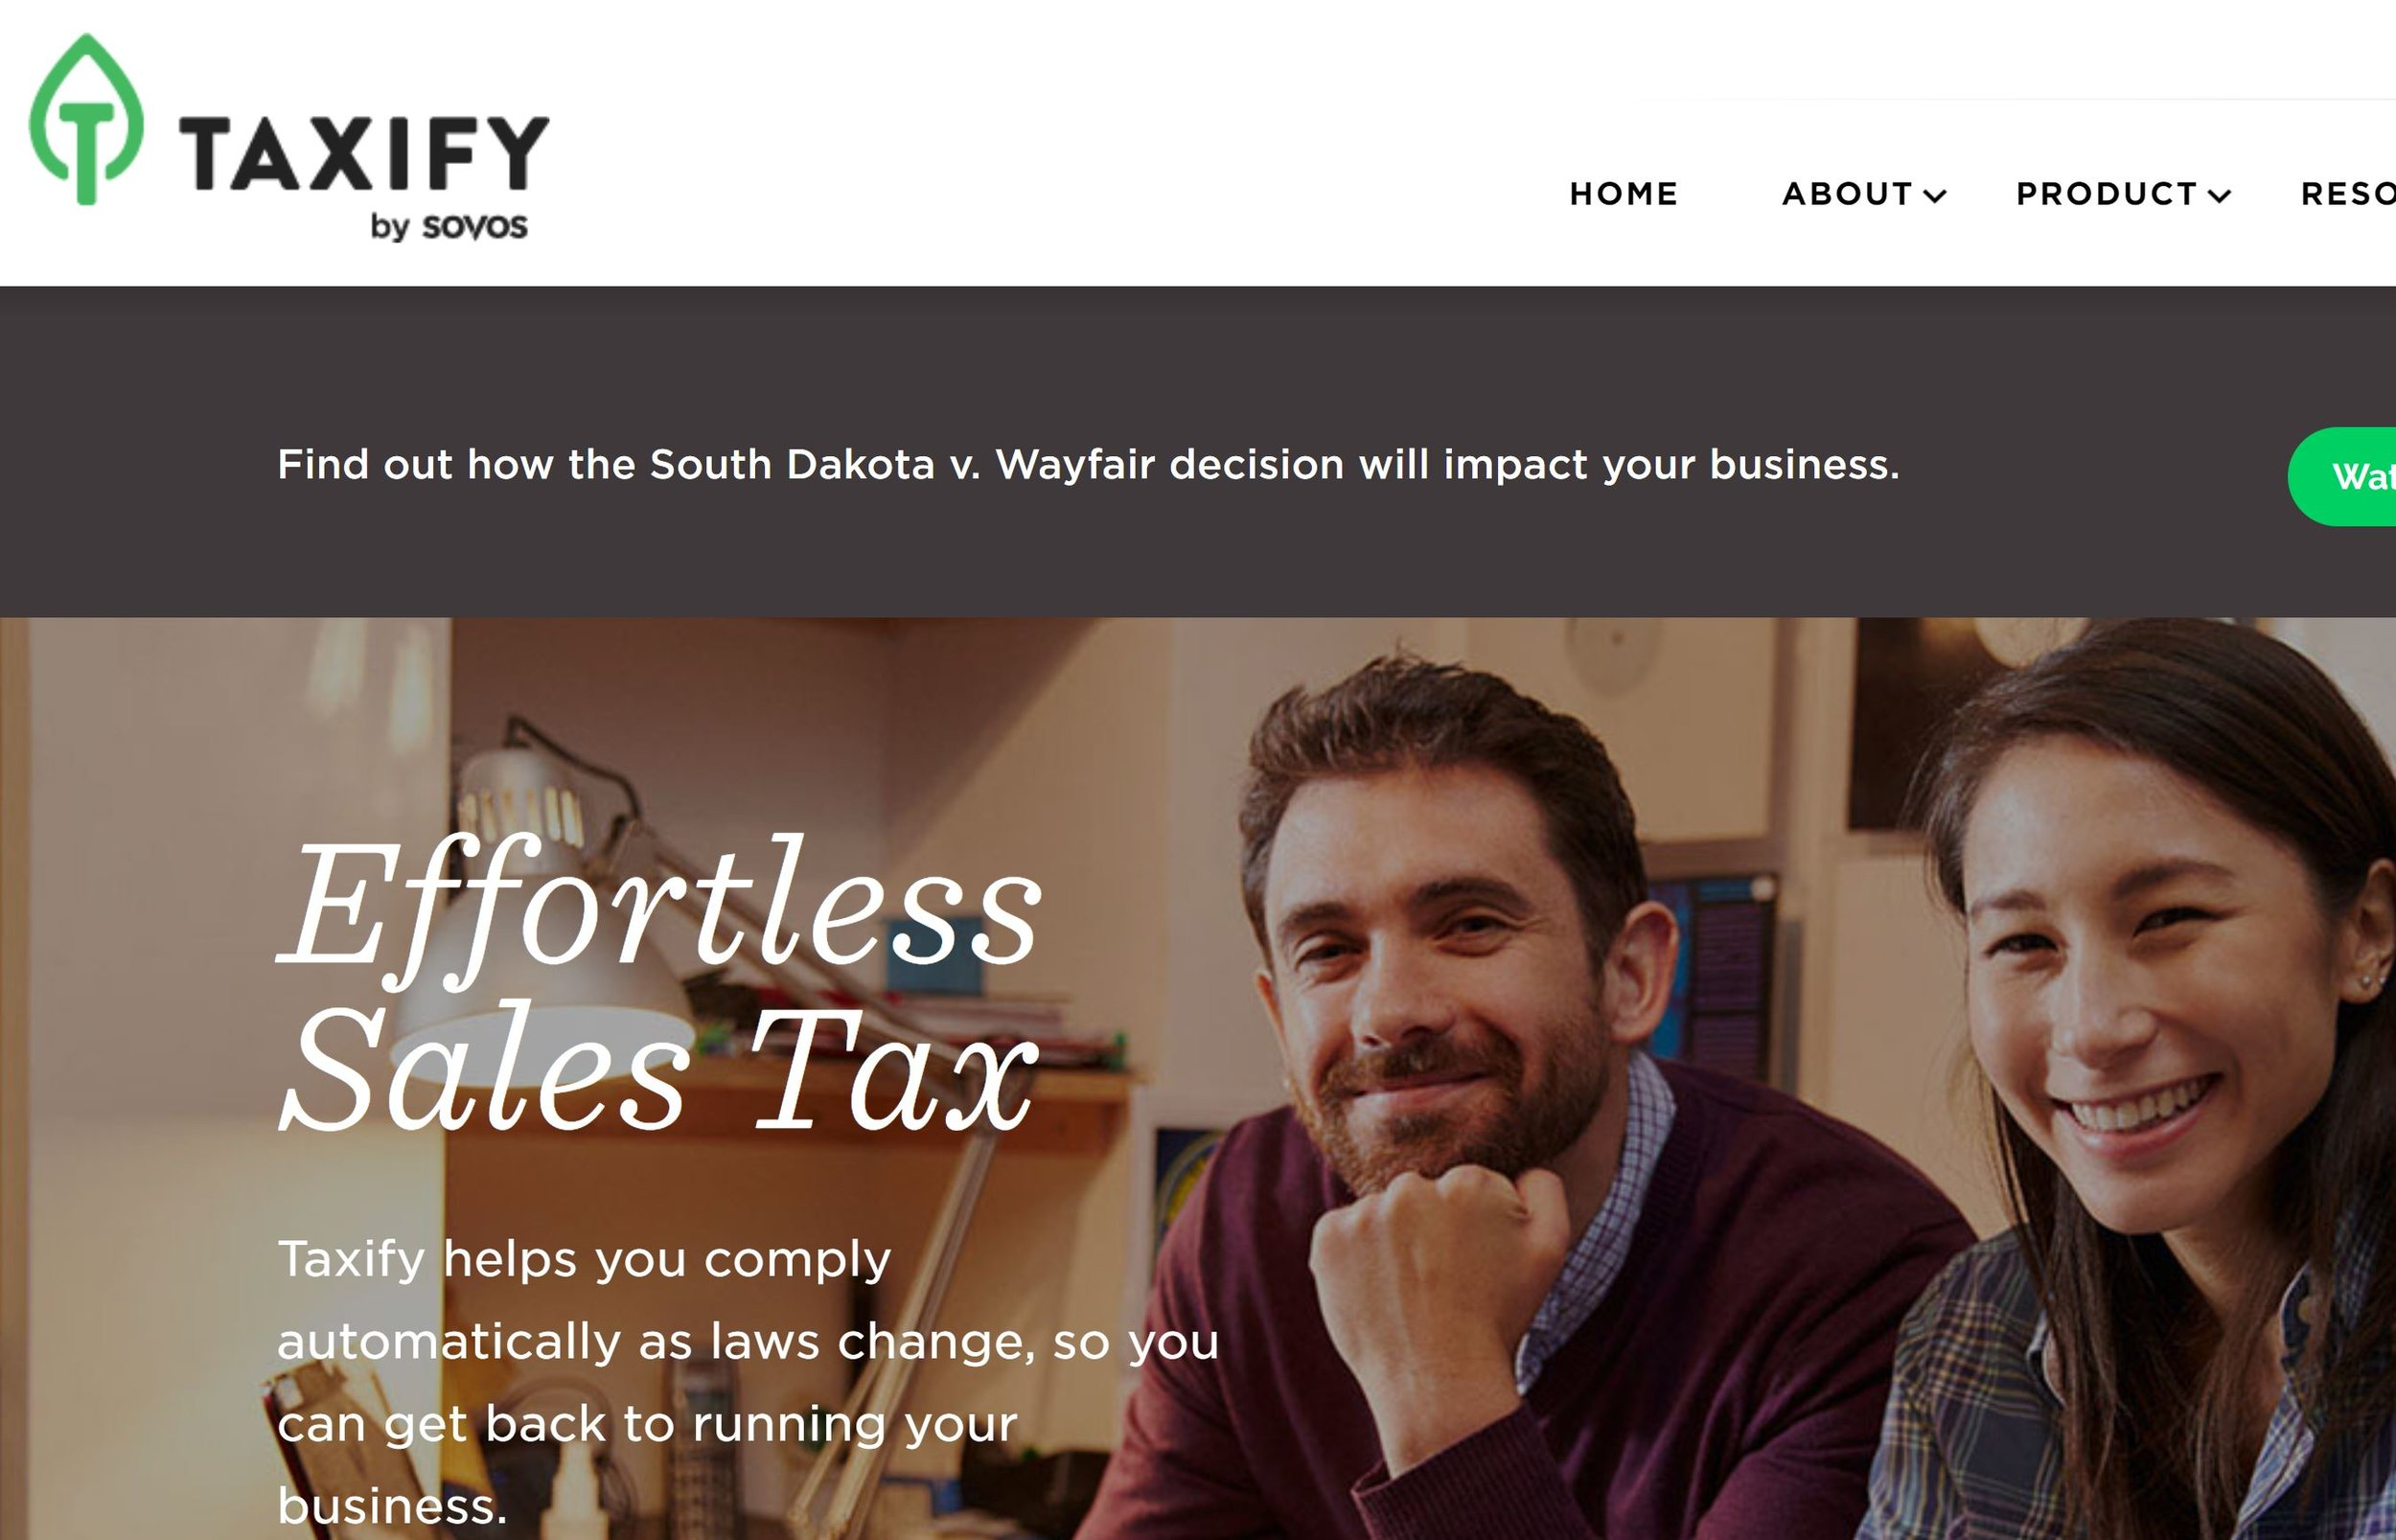 Taxify - Sales Tax Software with Automated Tax Reporting & Filing